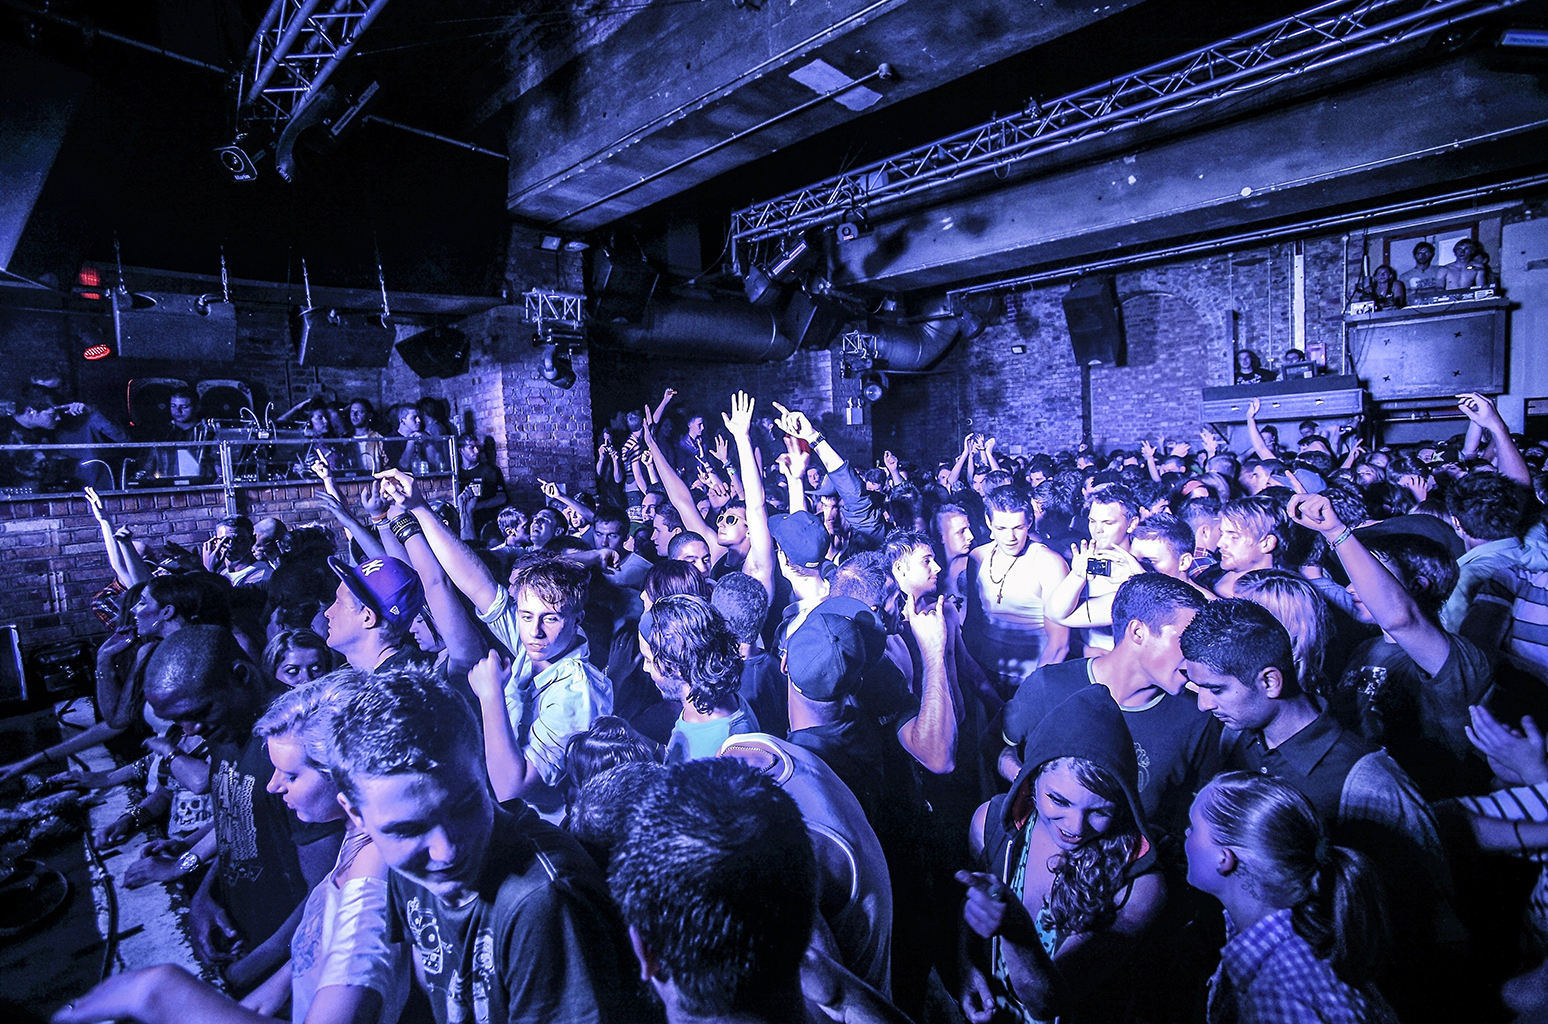 Defending Londons nightlife and the small businesses it supports